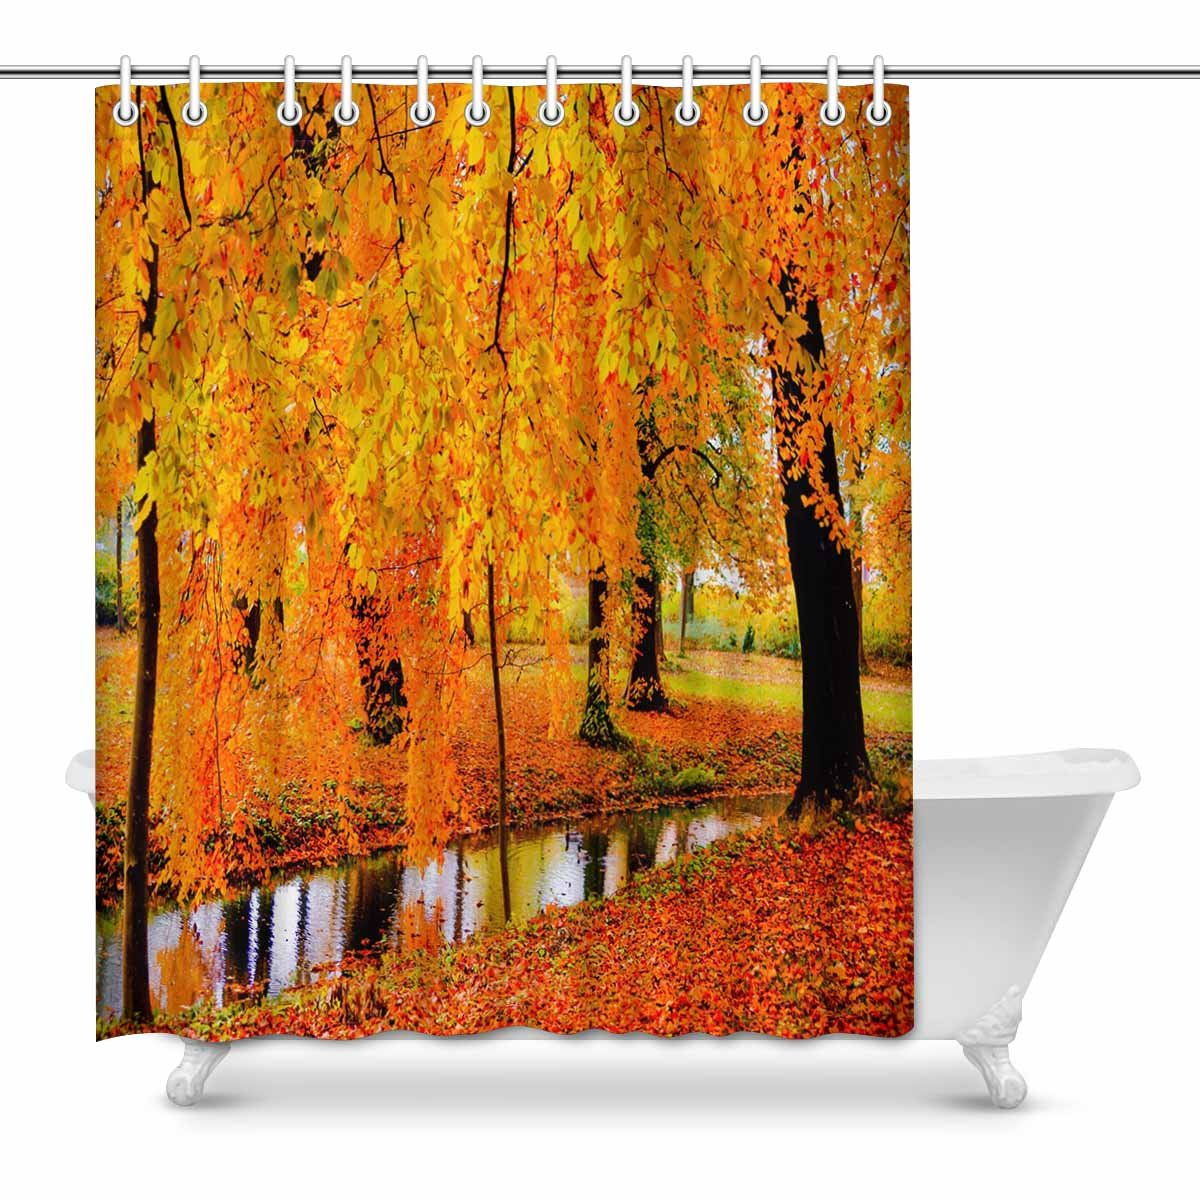 Golden Autumn Forest Waterproof Fabric Shower Curtain Liner Hooks Bathroom Mat